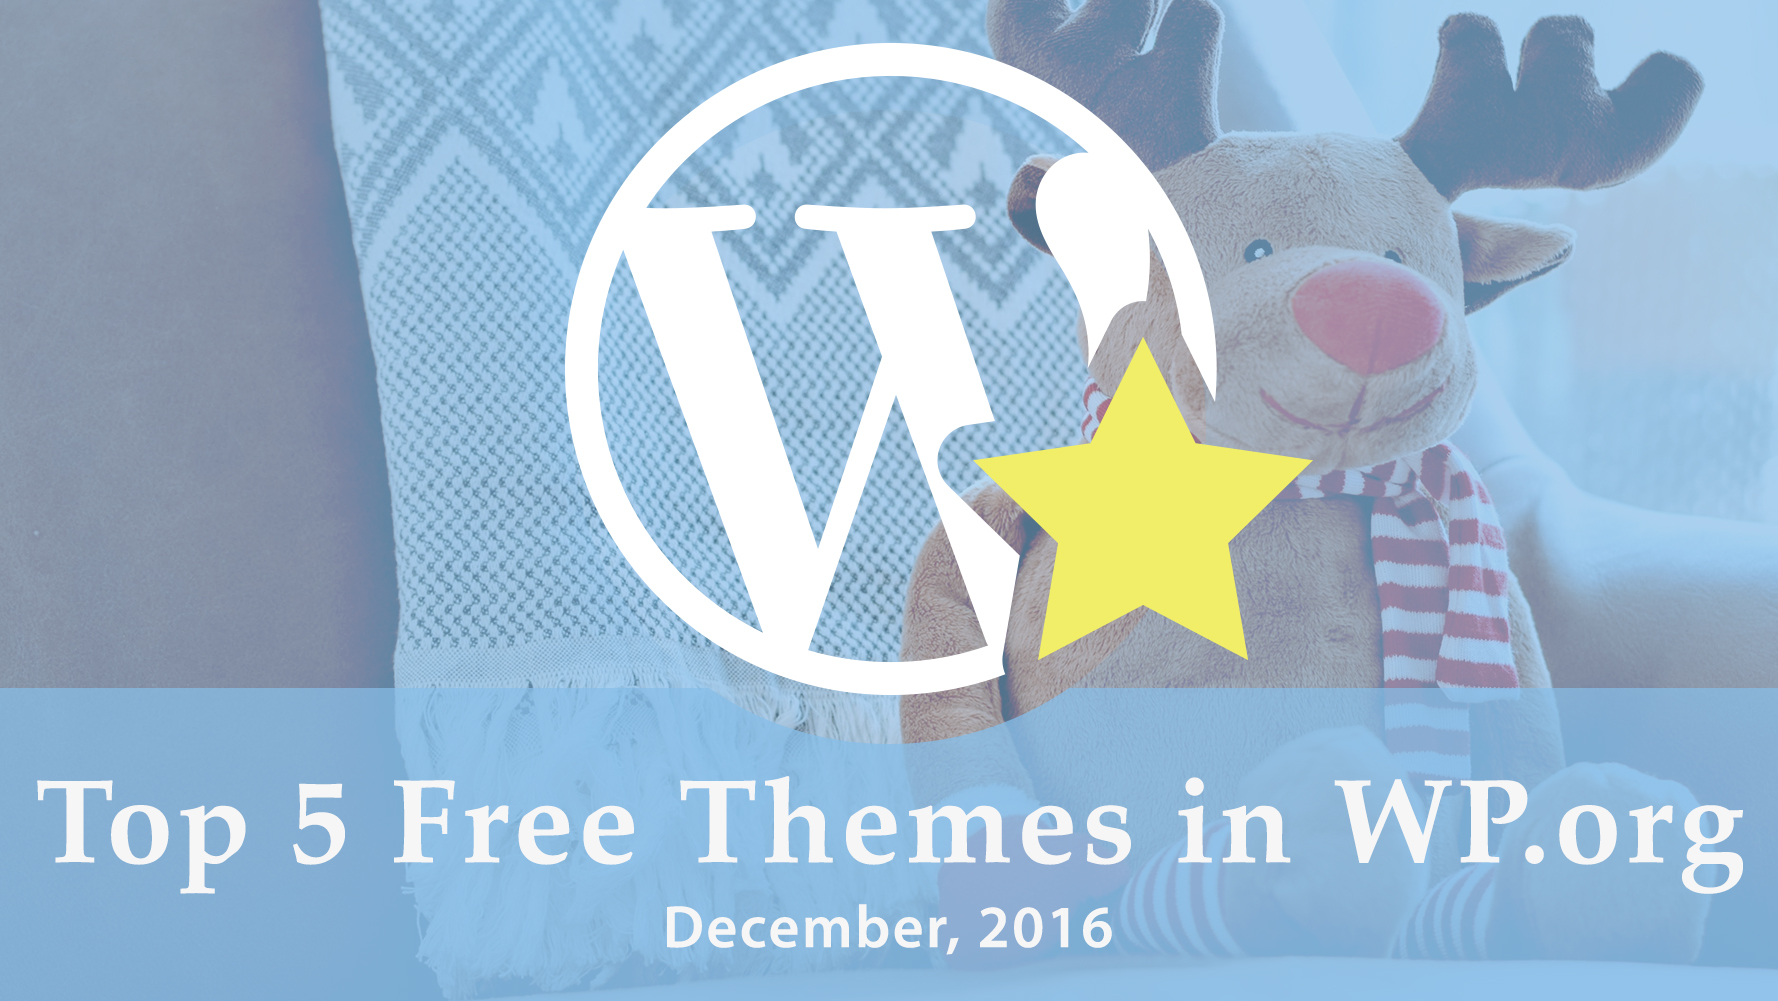 top 5 free themes in WordPress.org - December 2016